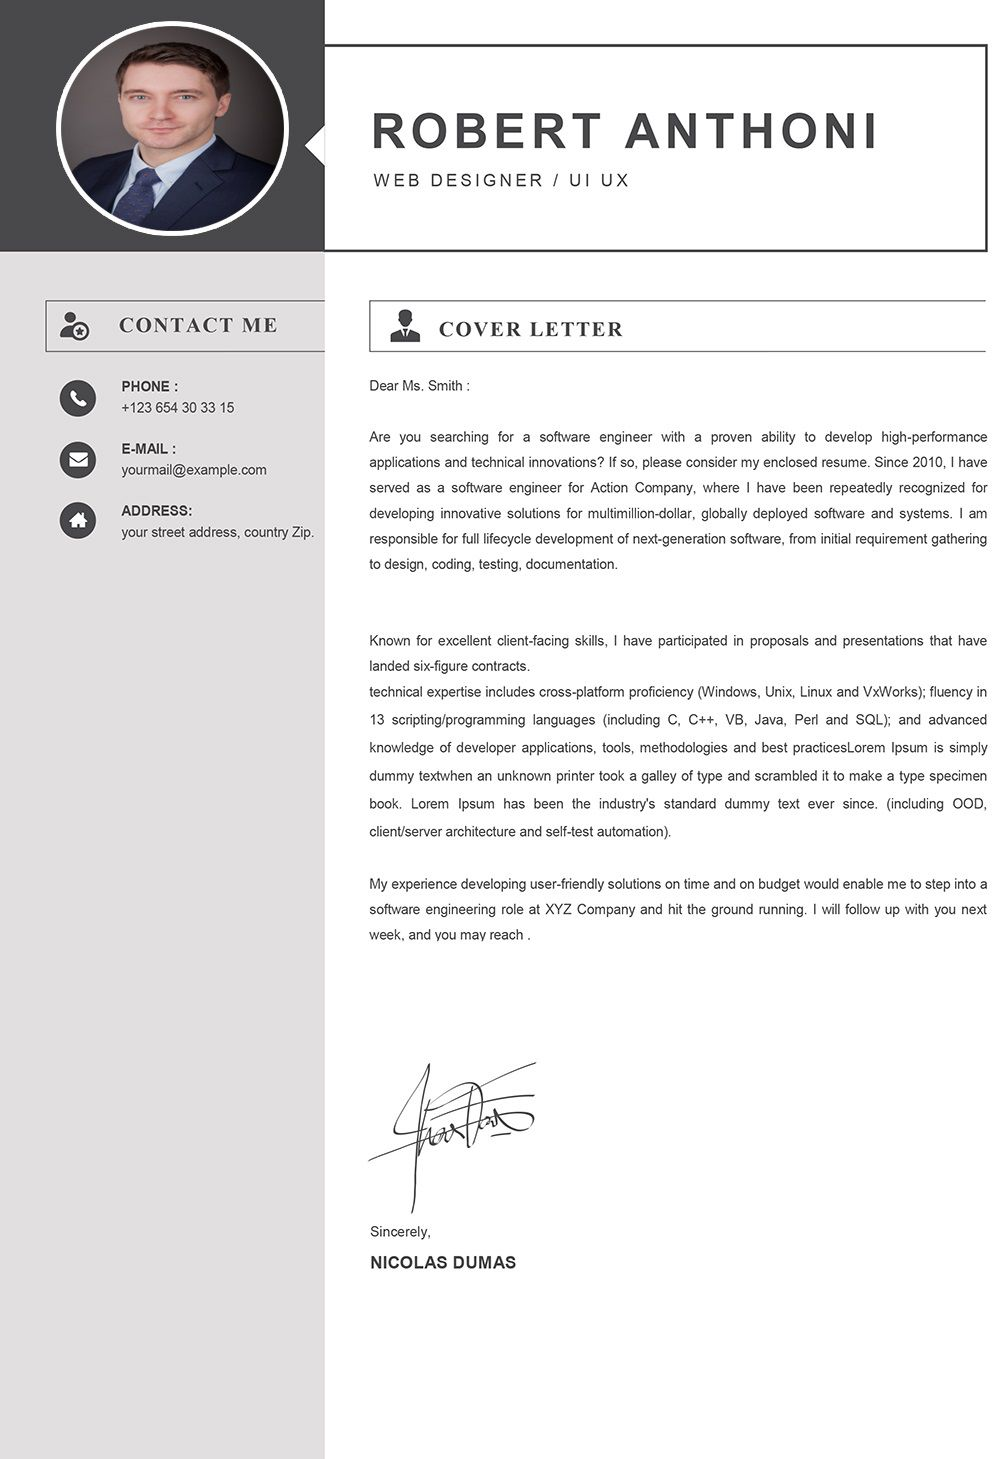 000 Exceptional Microsoft Cover Letter Template Download Highest Clarity  Word FreeFull